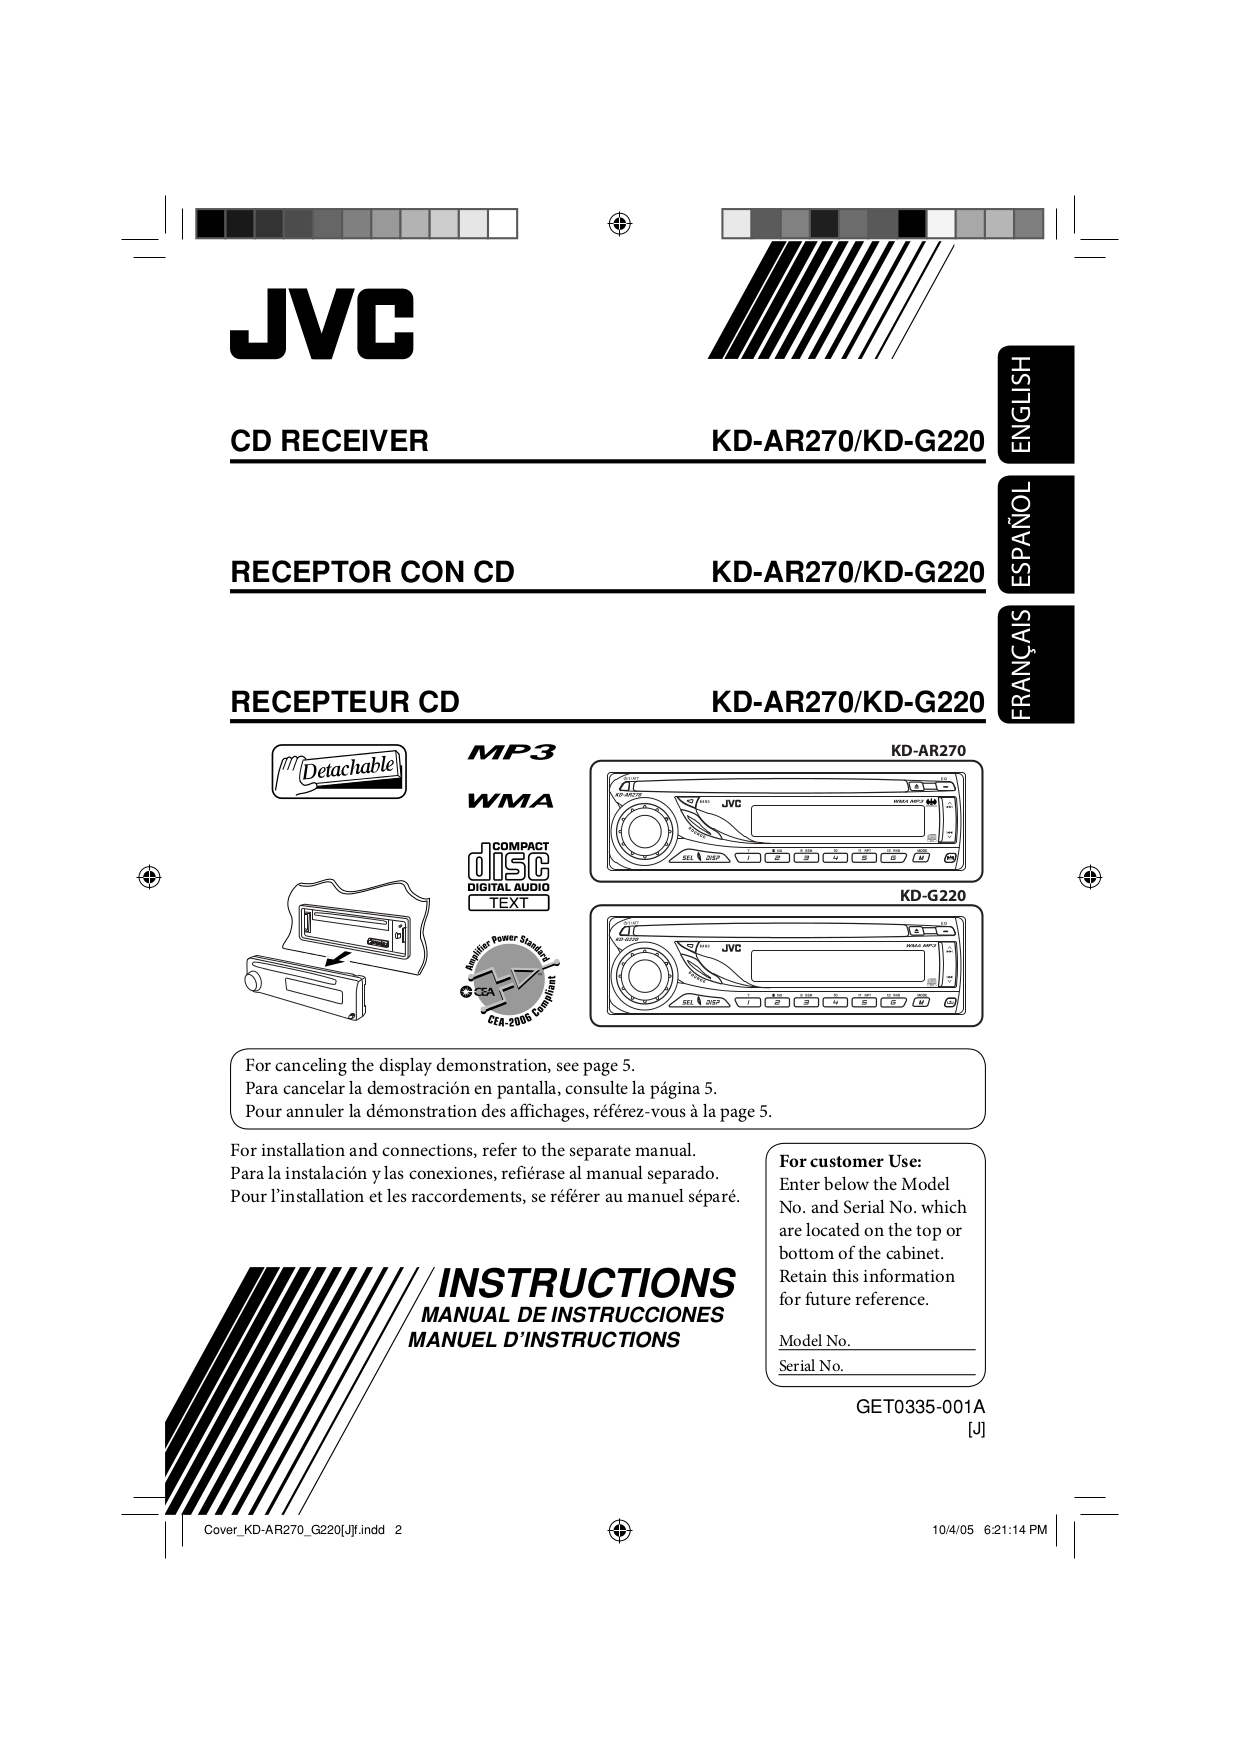 wiring diagram for jvc kd g230 wiring image wiring wiring diagram for jvc kd g140 wiring wiring diagrams car on wiring diagram for jvc kd